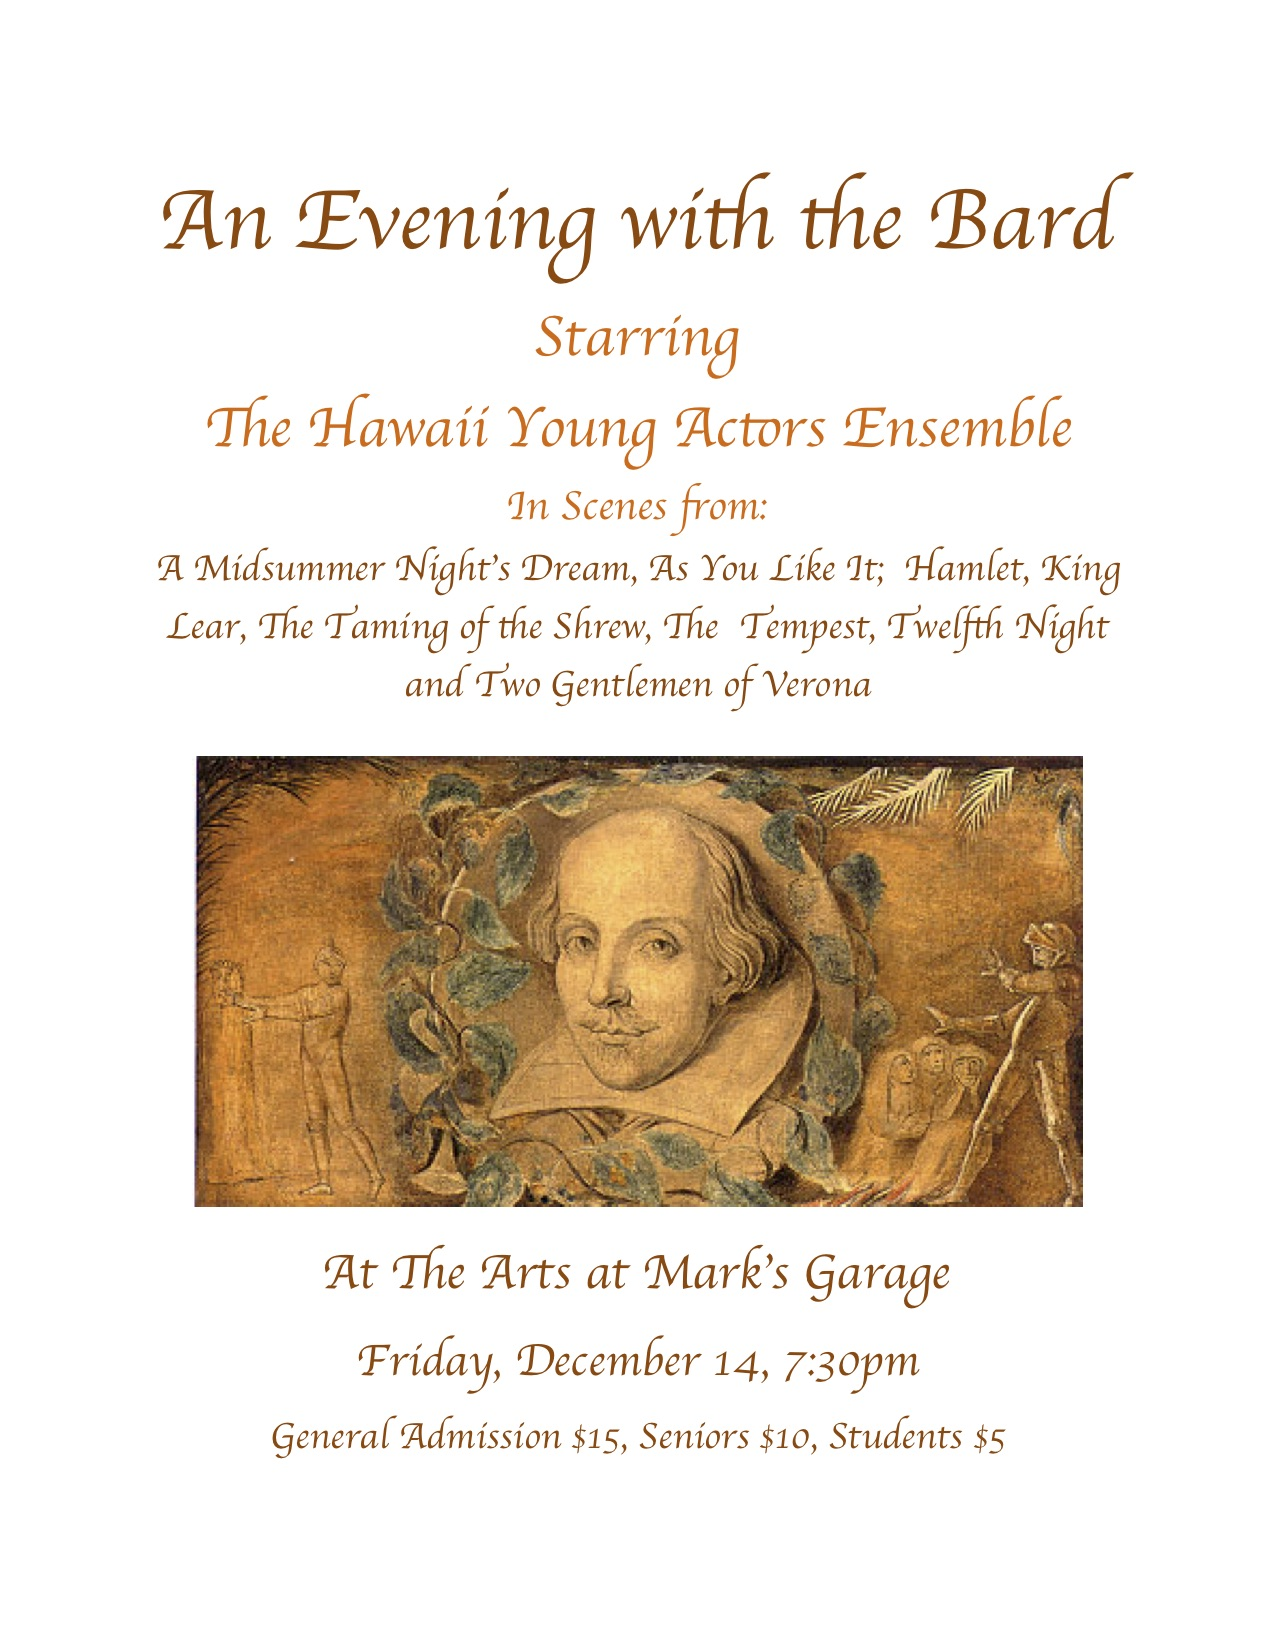 Evening with the Bard 2018 Hawaii Young Actors Ensemble Flyer 10.25.18.jpg